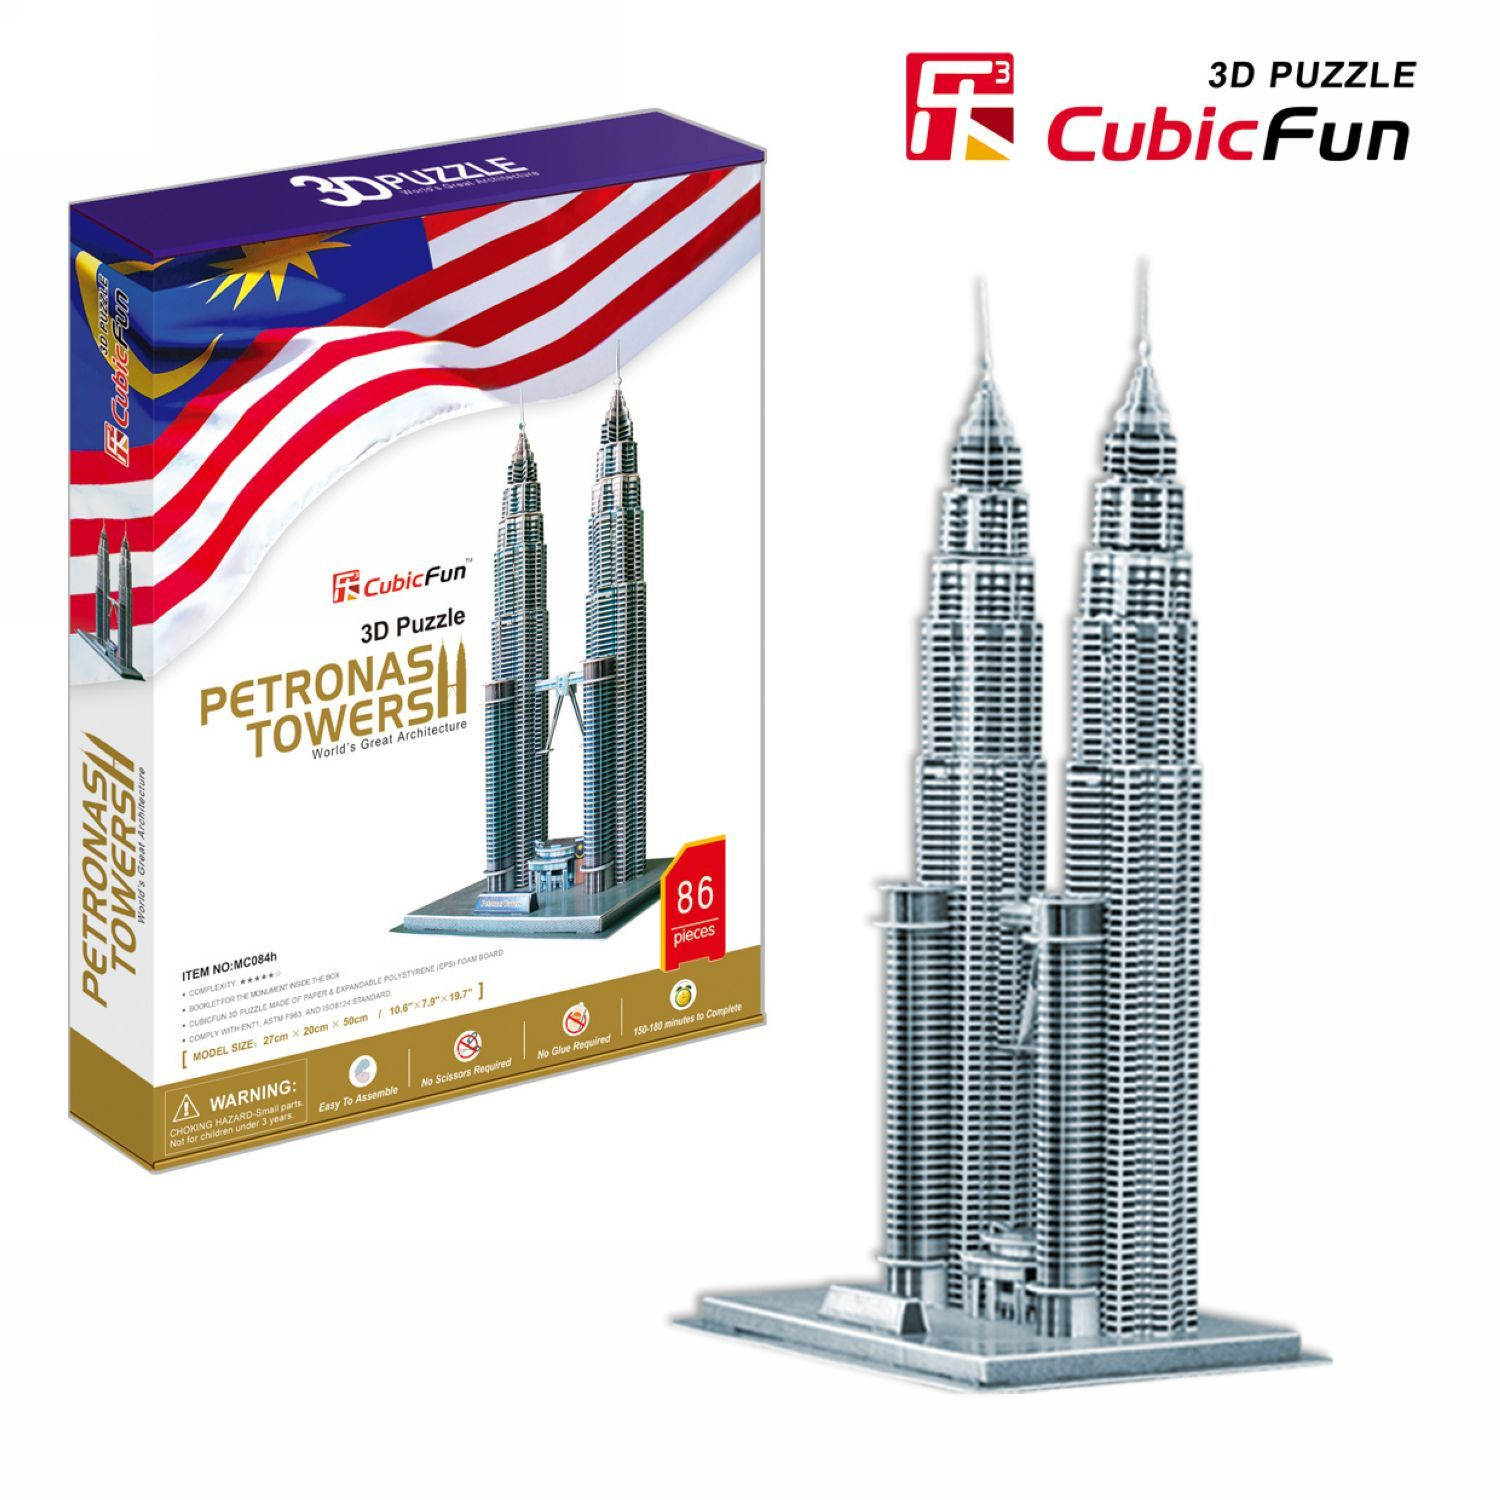 Children favorite toy gift 3d puzzle paper model MC084H Petronas towers Kuala Lumpur hardcover edition free shipping petronas towers cubicfun 3d educational puzzle paper